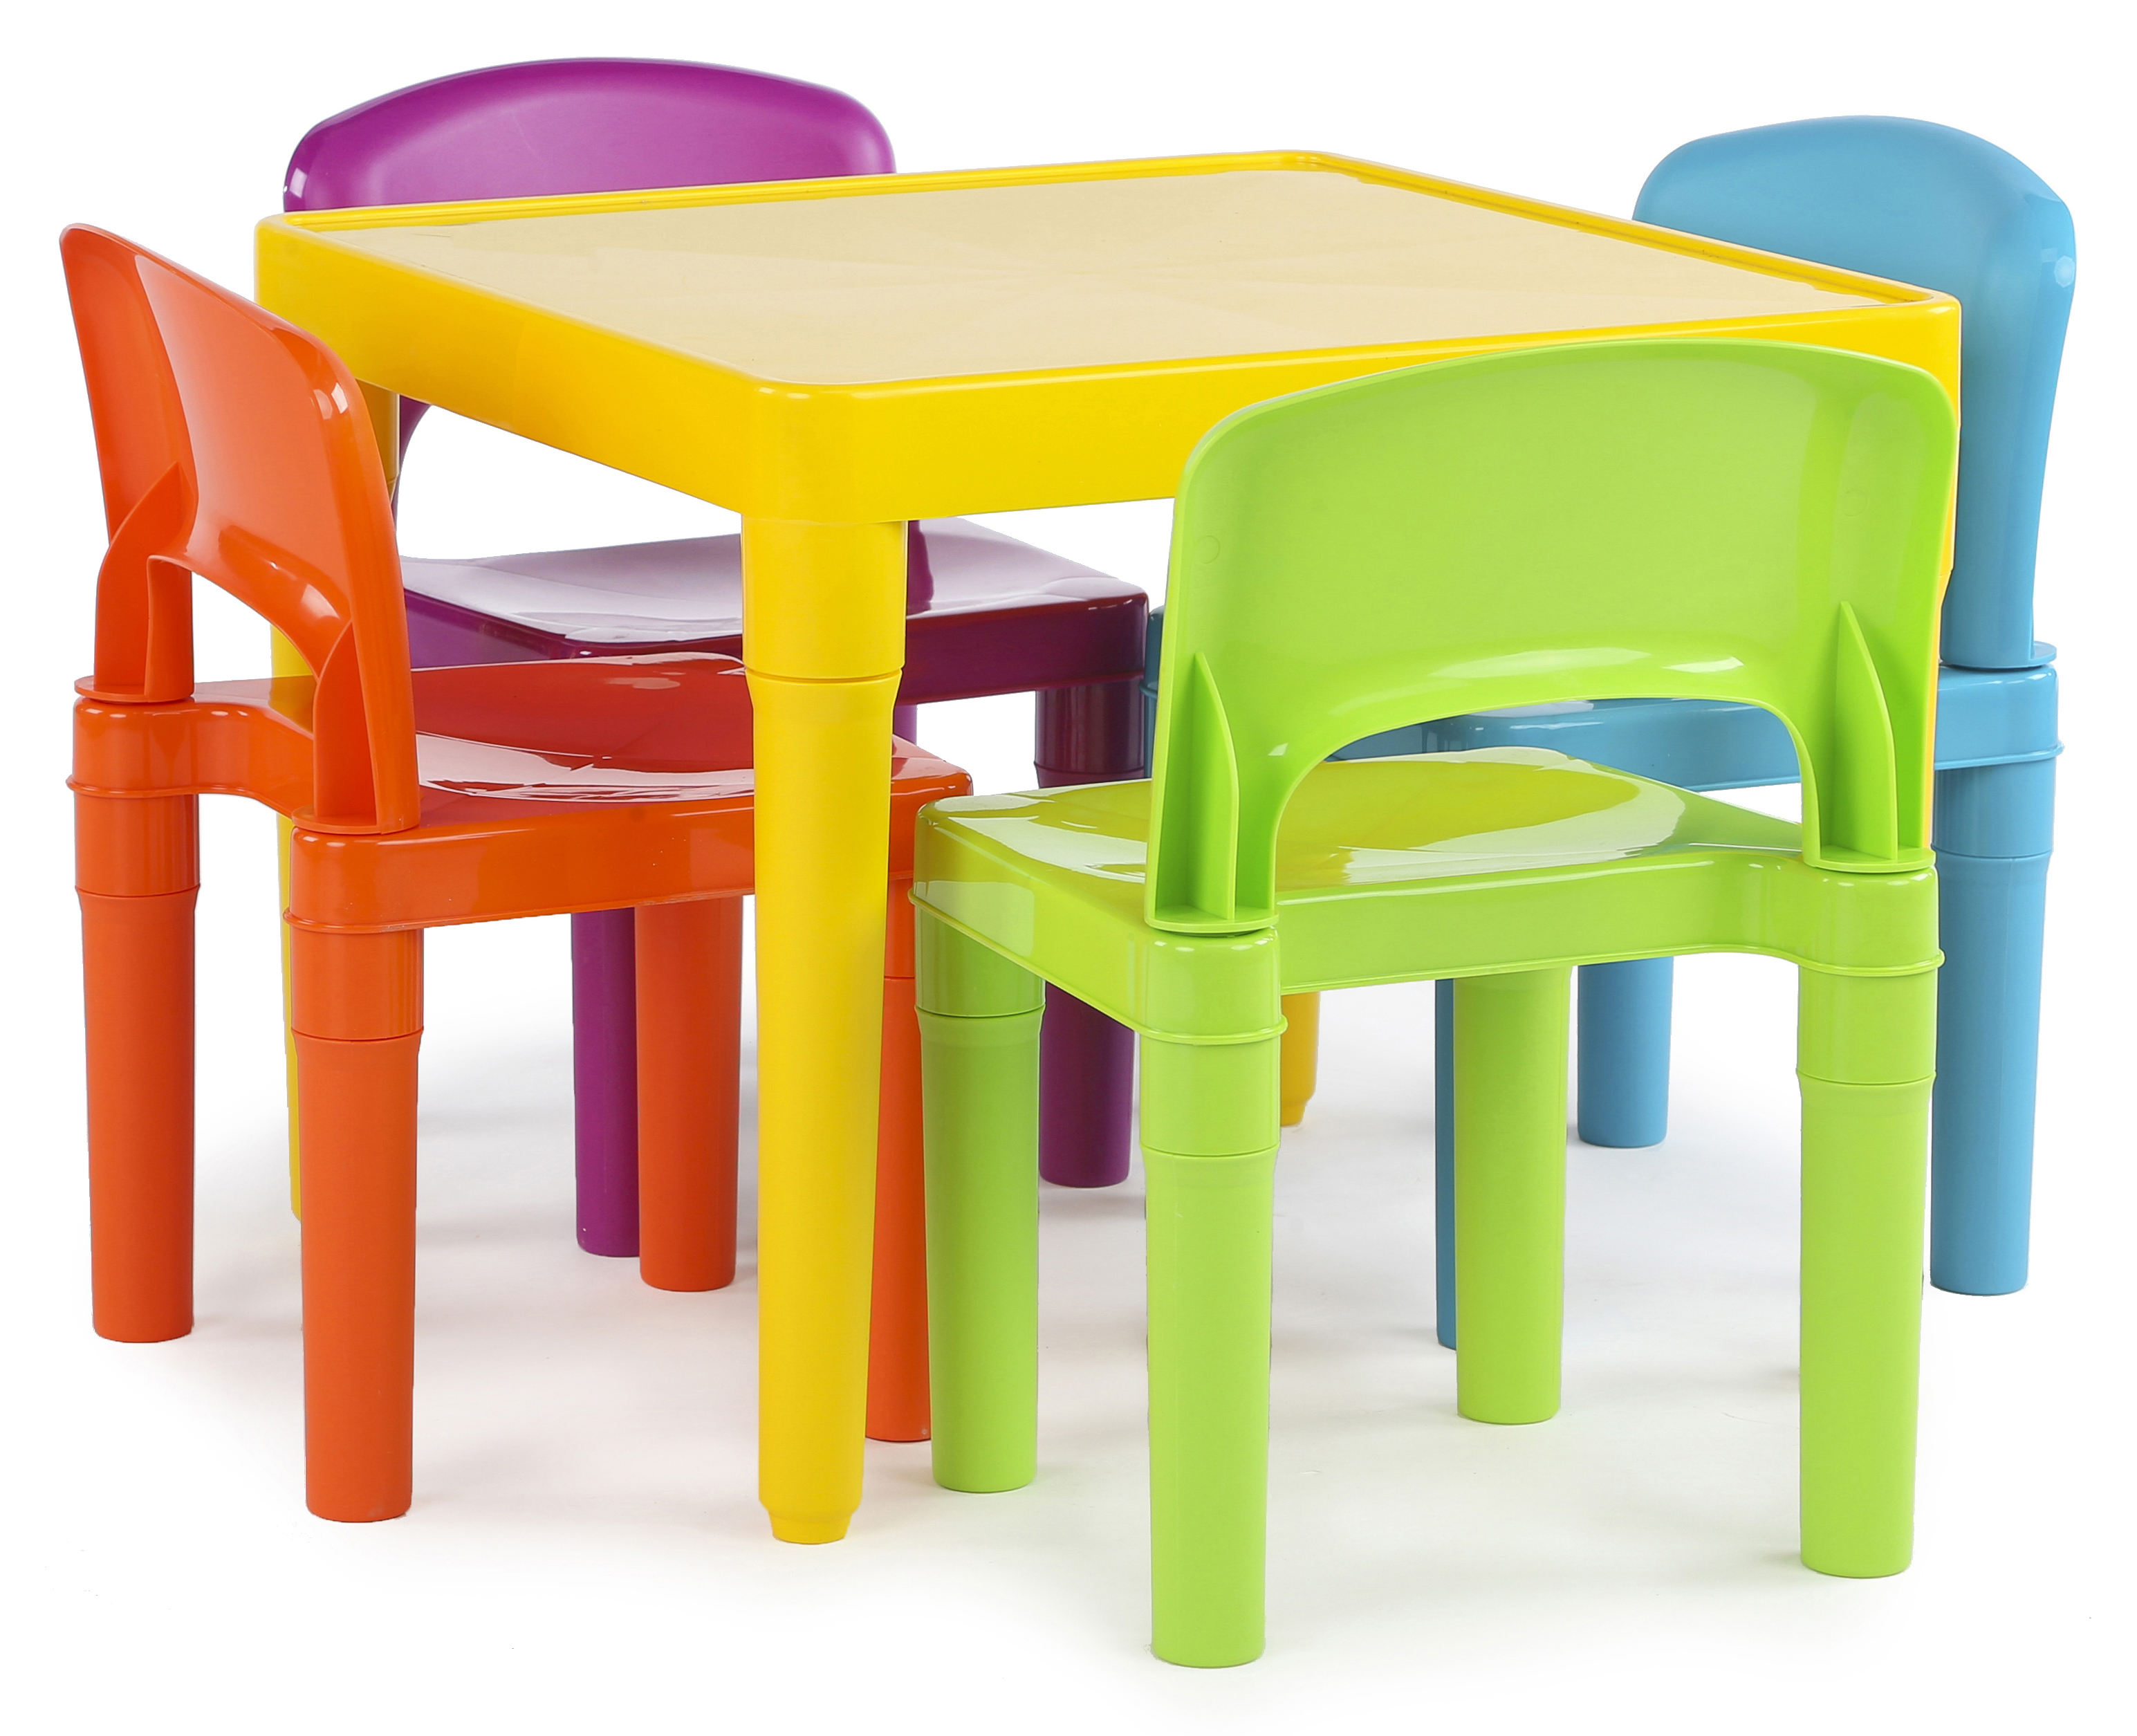 Toddler Table And Chairs Plastic Tot Tutors Kids Plastic Table And 4 Chairs Set Vibrant Colors